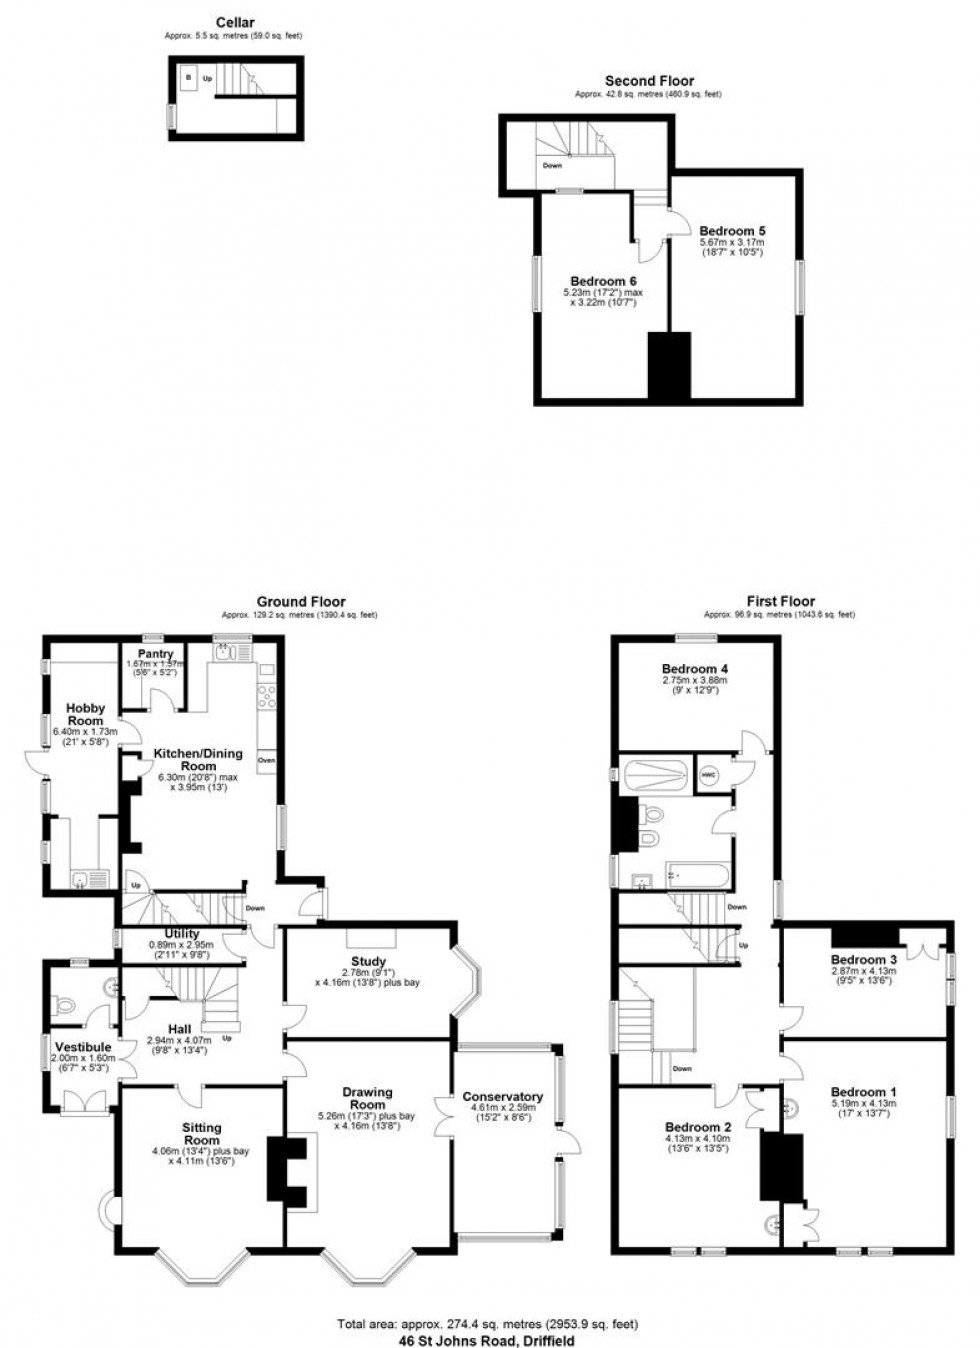 Floorplan for 46 St. Johns Road, Driffield, East Yorkshire, YO25 6RS